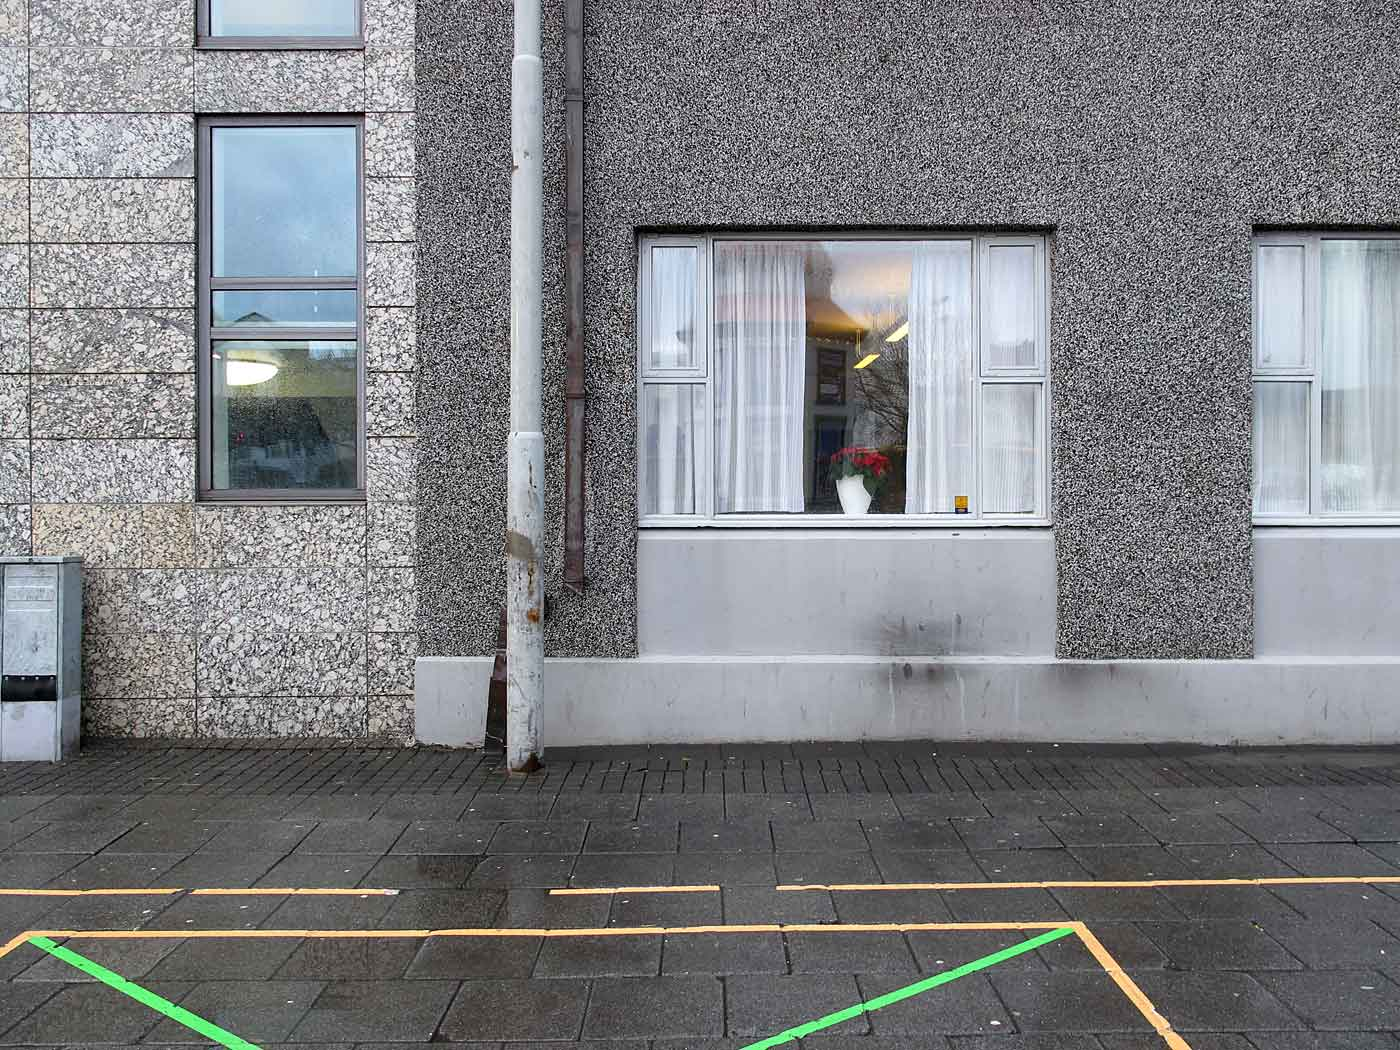 Reykjav&iacute;k. &quot;Meine Banken&quot; 2 February 2013. - &quot;Meine Banken&quot; looked like this today! Or like <a href='/12-09/b5348e.php' target='_blank' class='linksnormal'>this</a> on 18 September 2012! (2 February 2013)